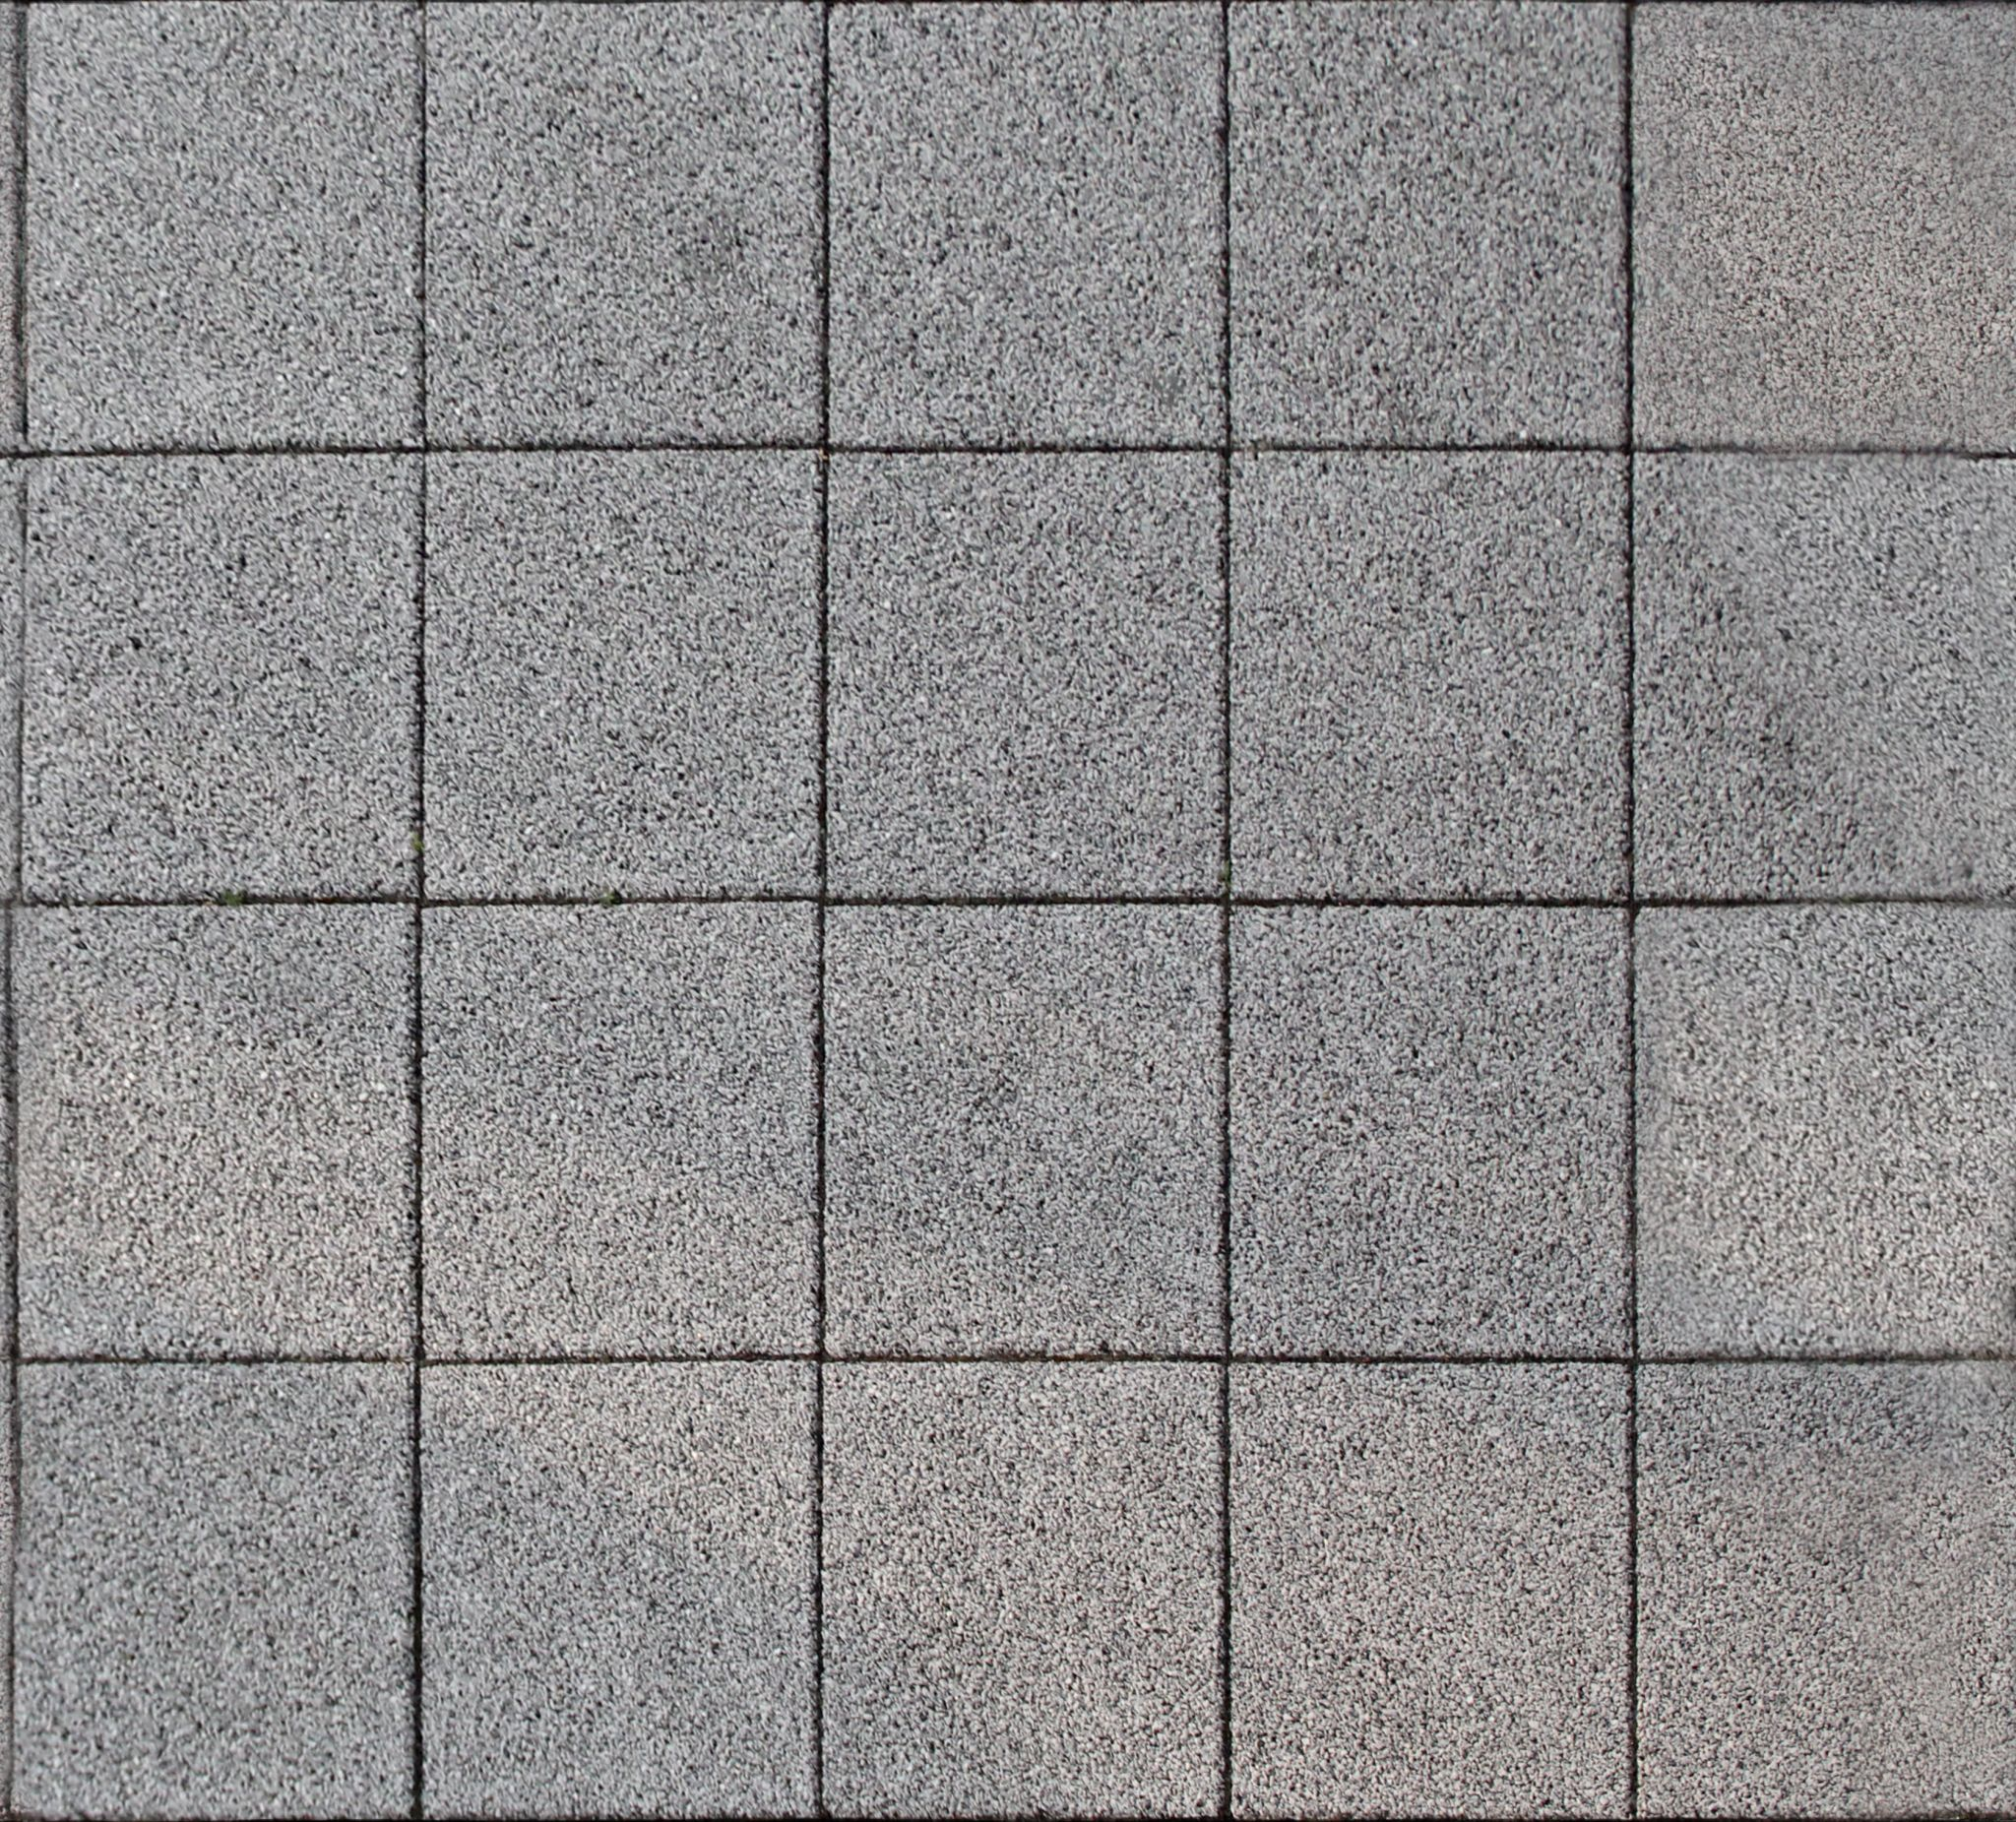 Paving - Grey Square Stones - Seamless Texture with normalmap ...